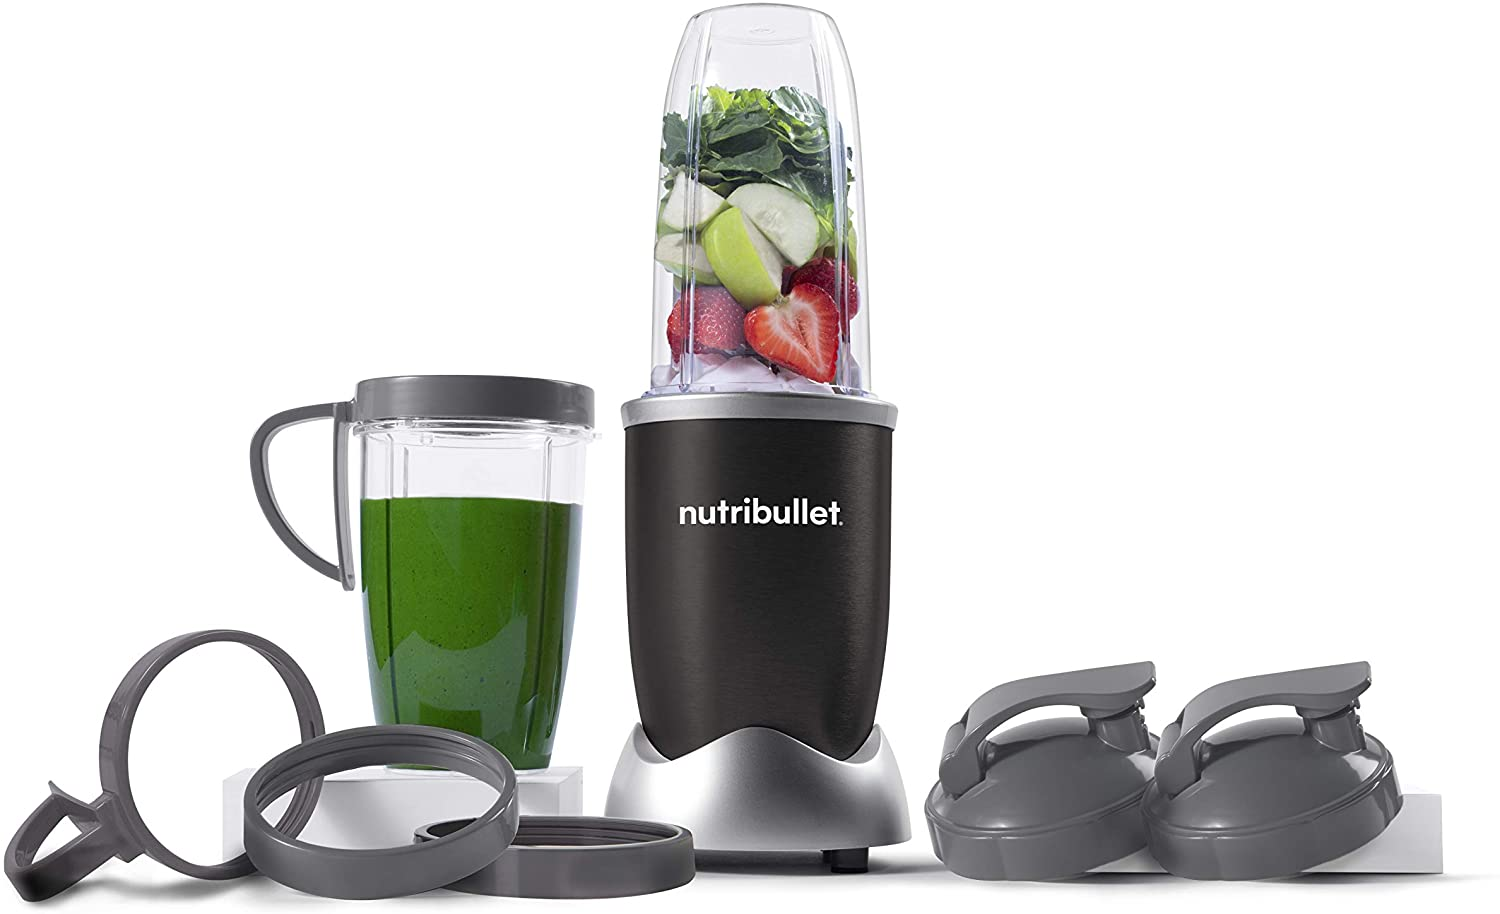 NutriBullet NB9-1301K Pro Blender, 13-Piece